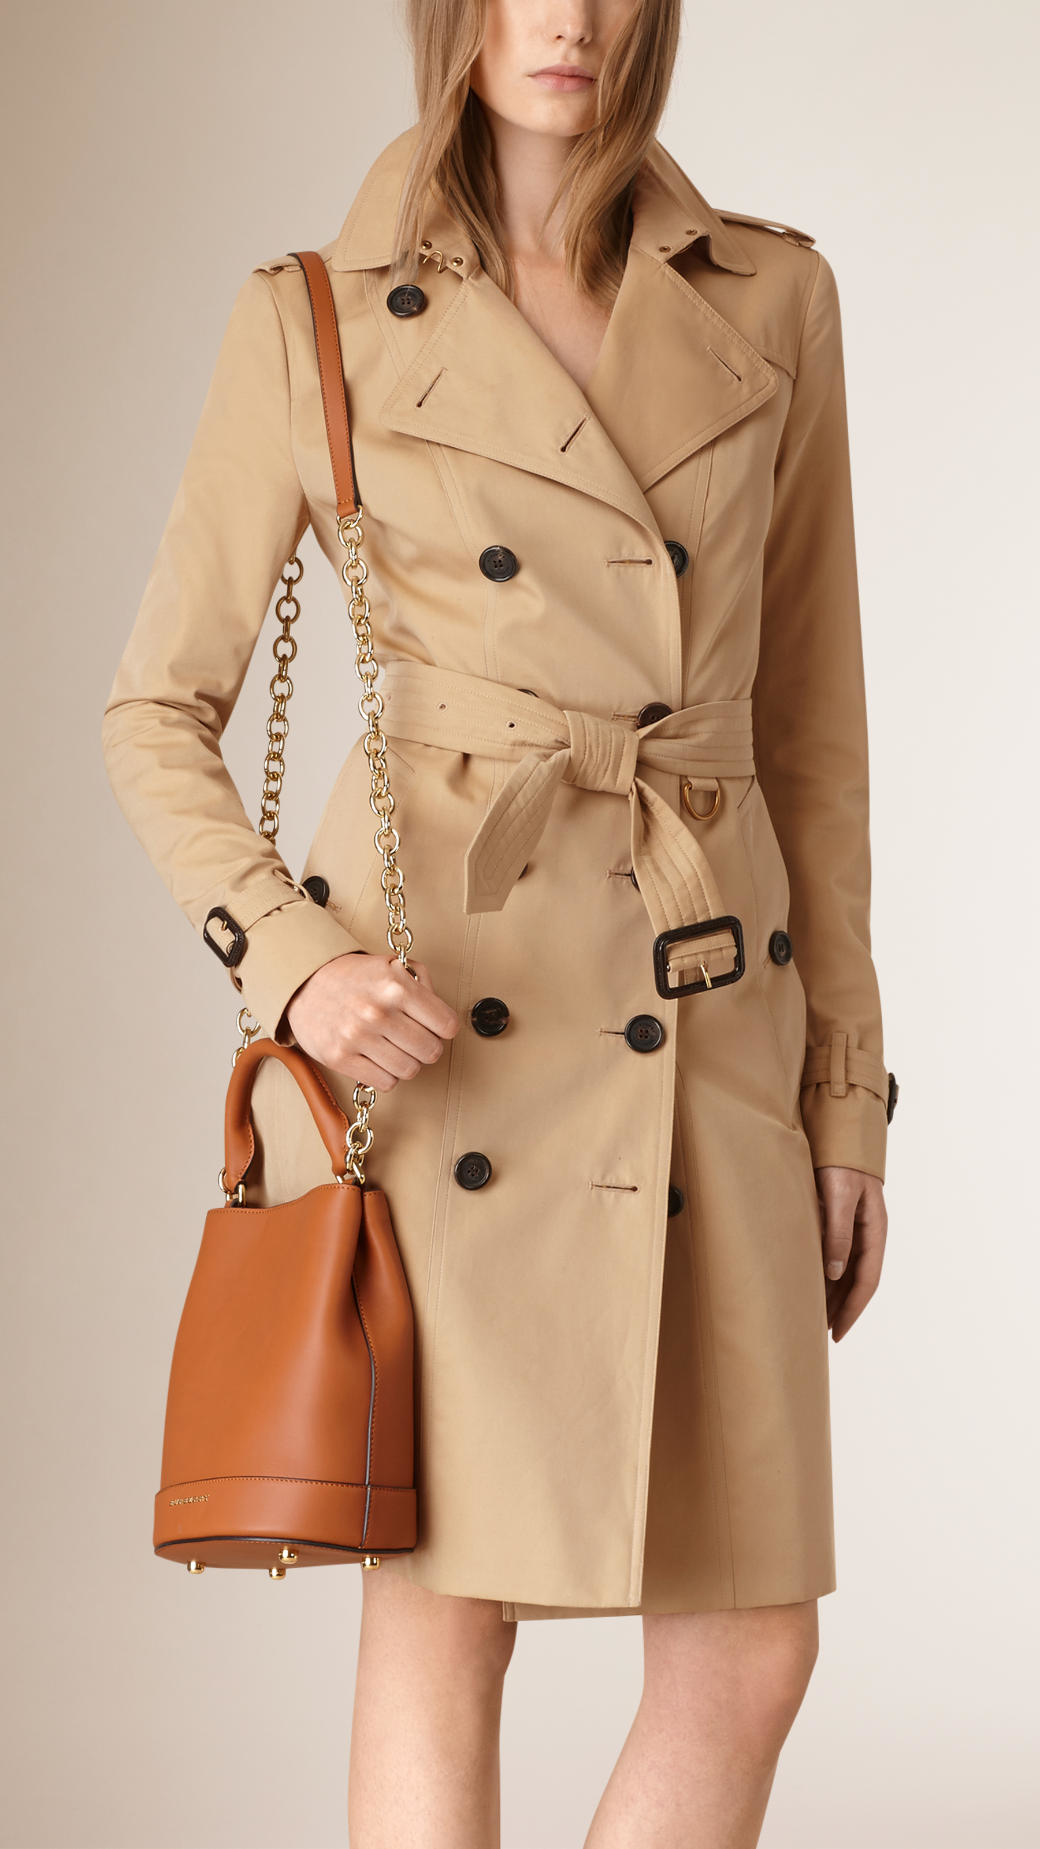 84dab331a904 Lyst - Burberry The Small Bucket Bag In Leather Light Toffee in Brown